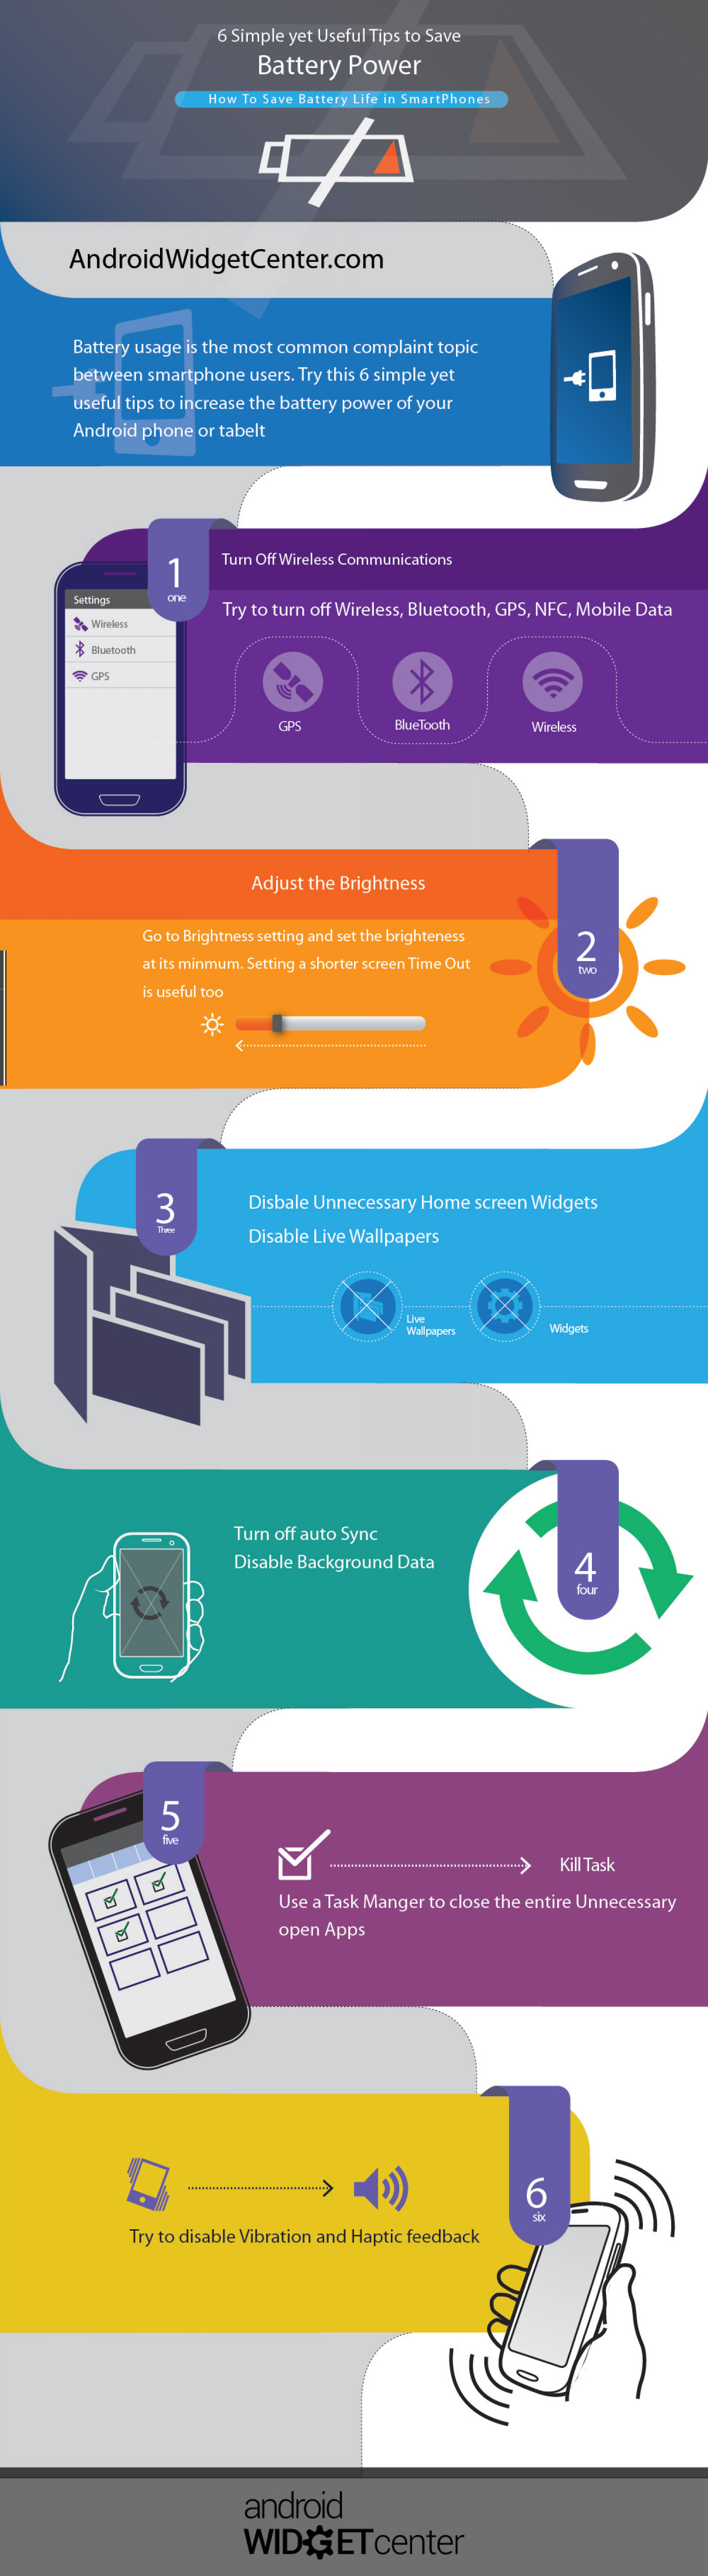 6 Simple yet Useful Tips to Save Battery Power on Android Infographic